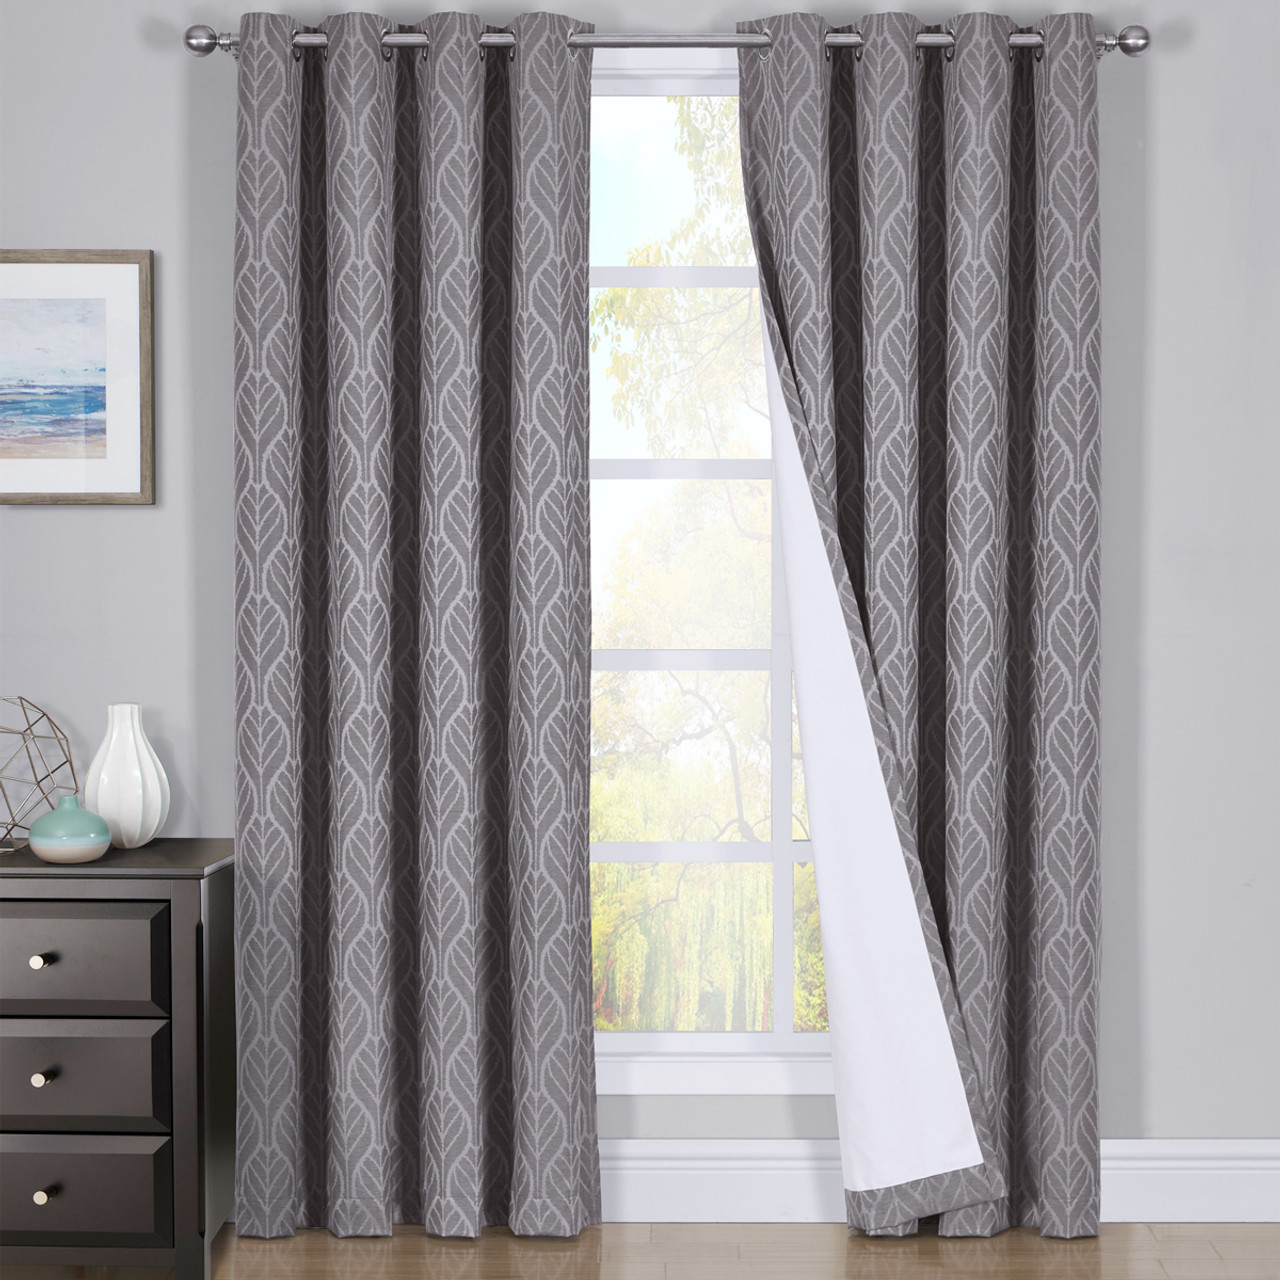 Jacquard Curtains Pair Hilton Blackout Curtains Jacquard Thermal Insulated Set Of 2 Panels